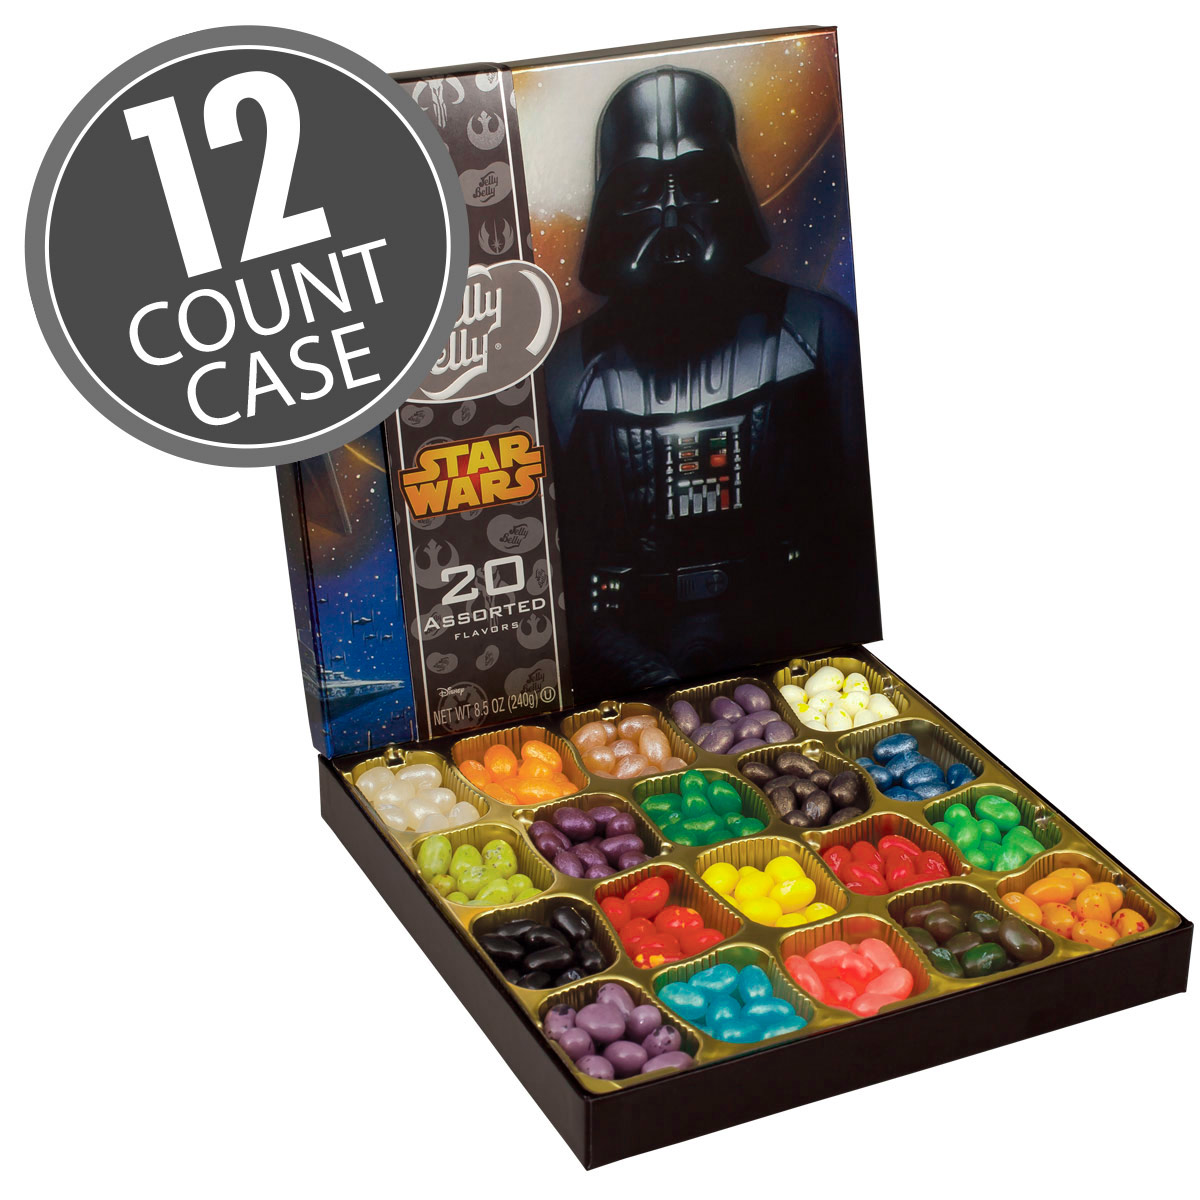 STAR WARS™ Ultra Gift Box - 8.5 oz Gift Box - 10 Count Case